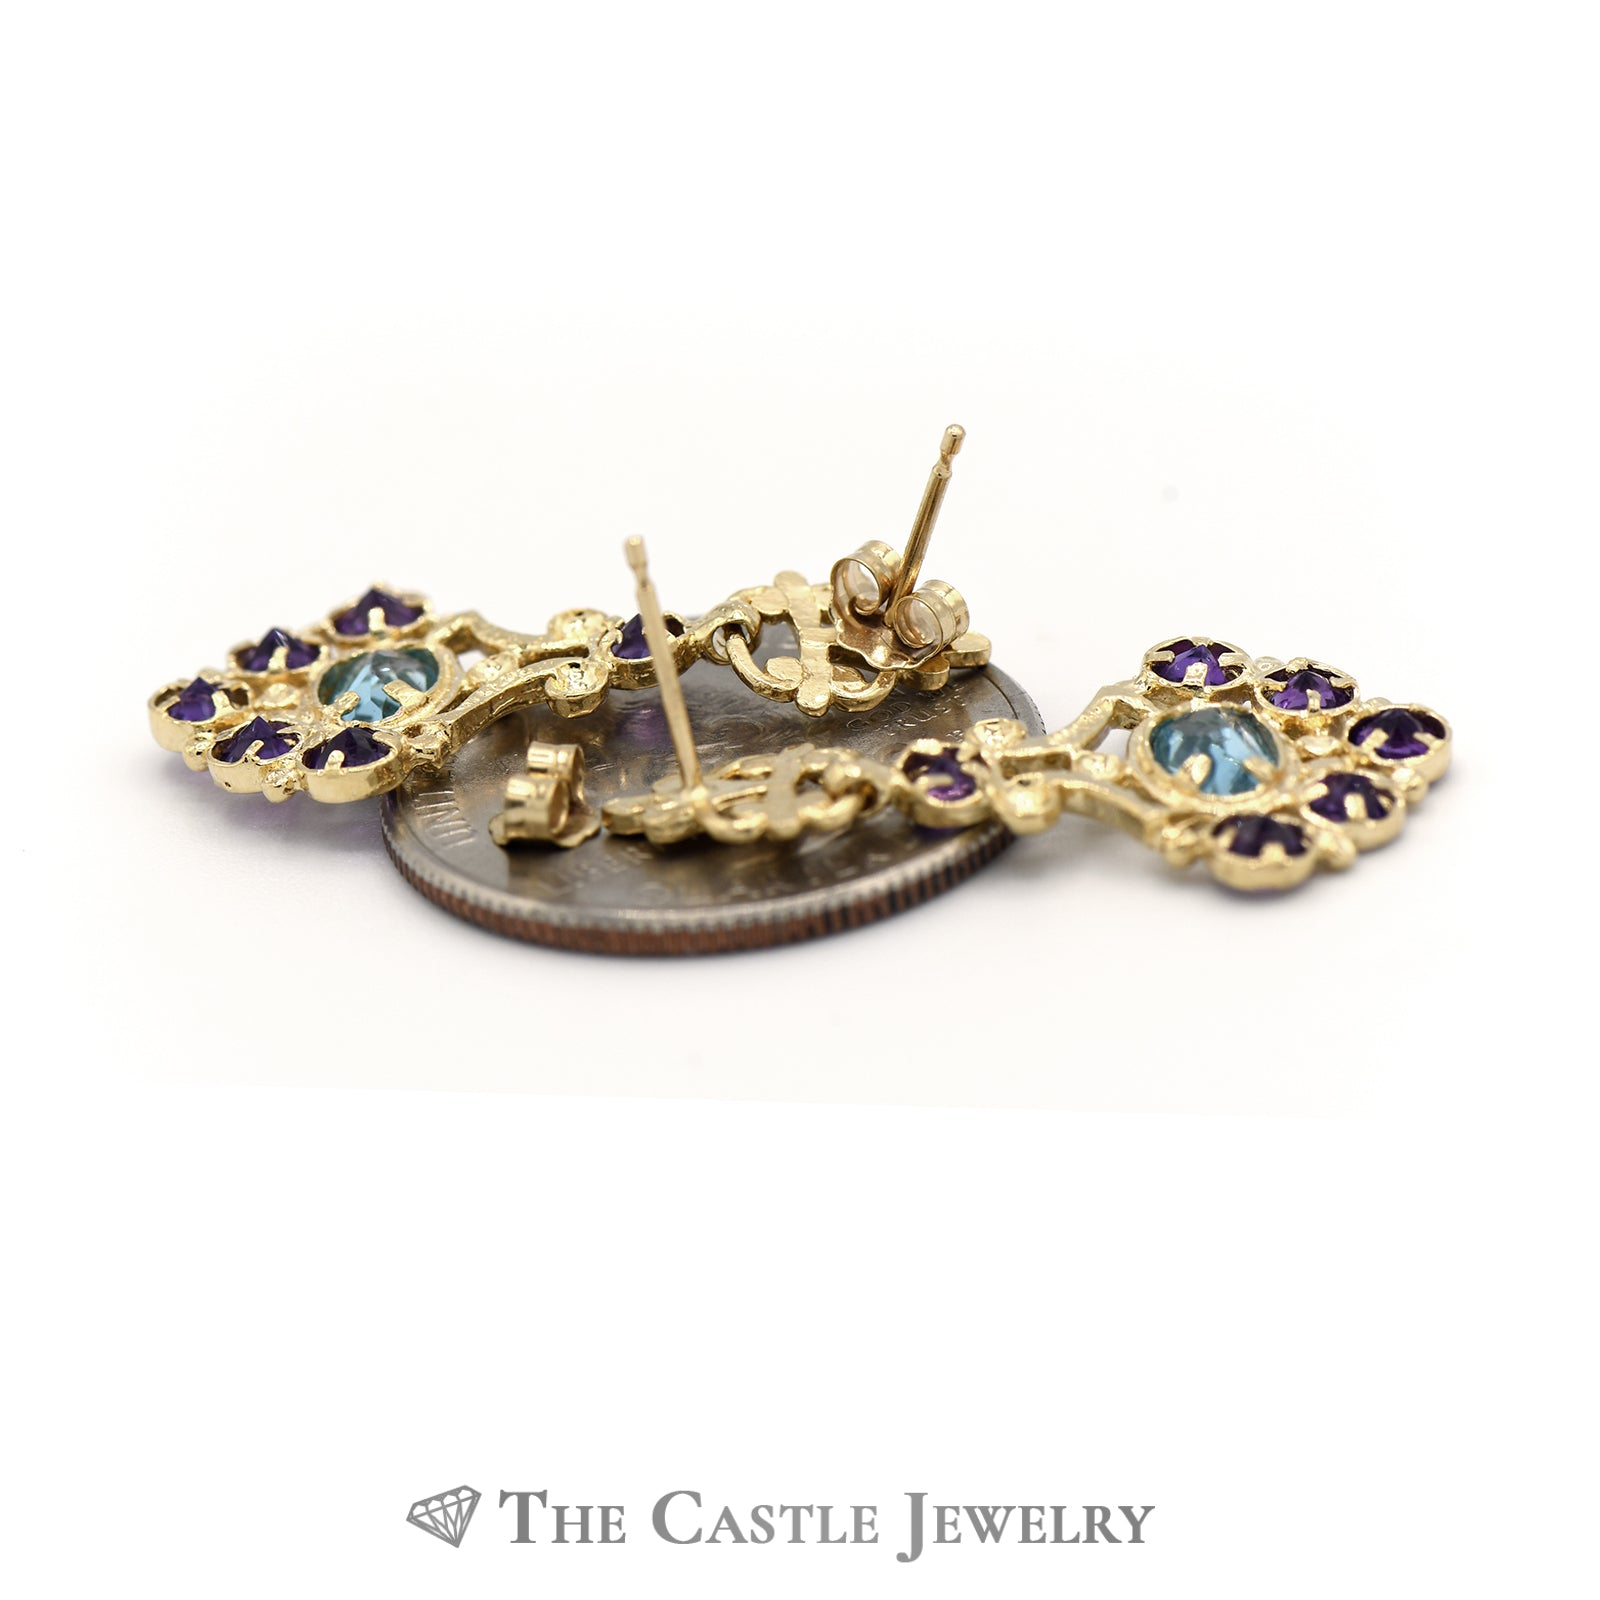 Bohemian Style Earrings in 14K Yellow Gold with Amethyst And Blue Topaz-1